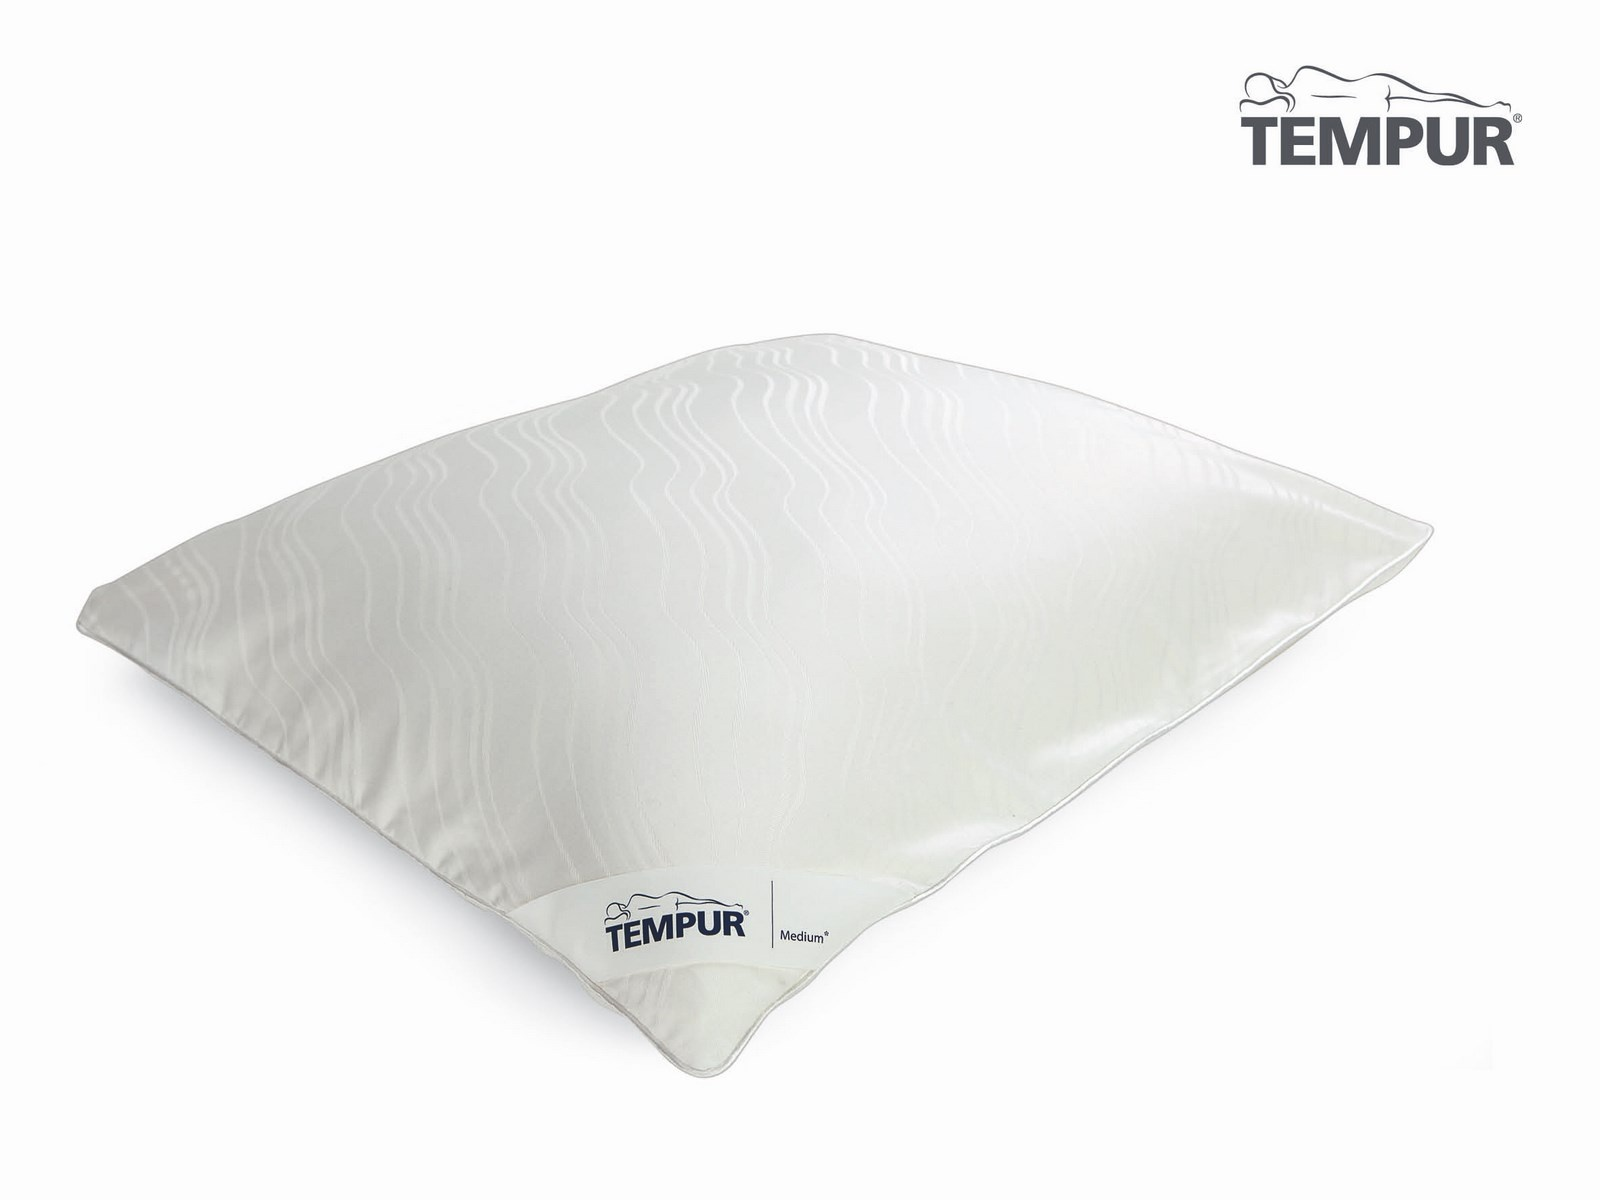 TEMPUR Traditional hovedpude, blød